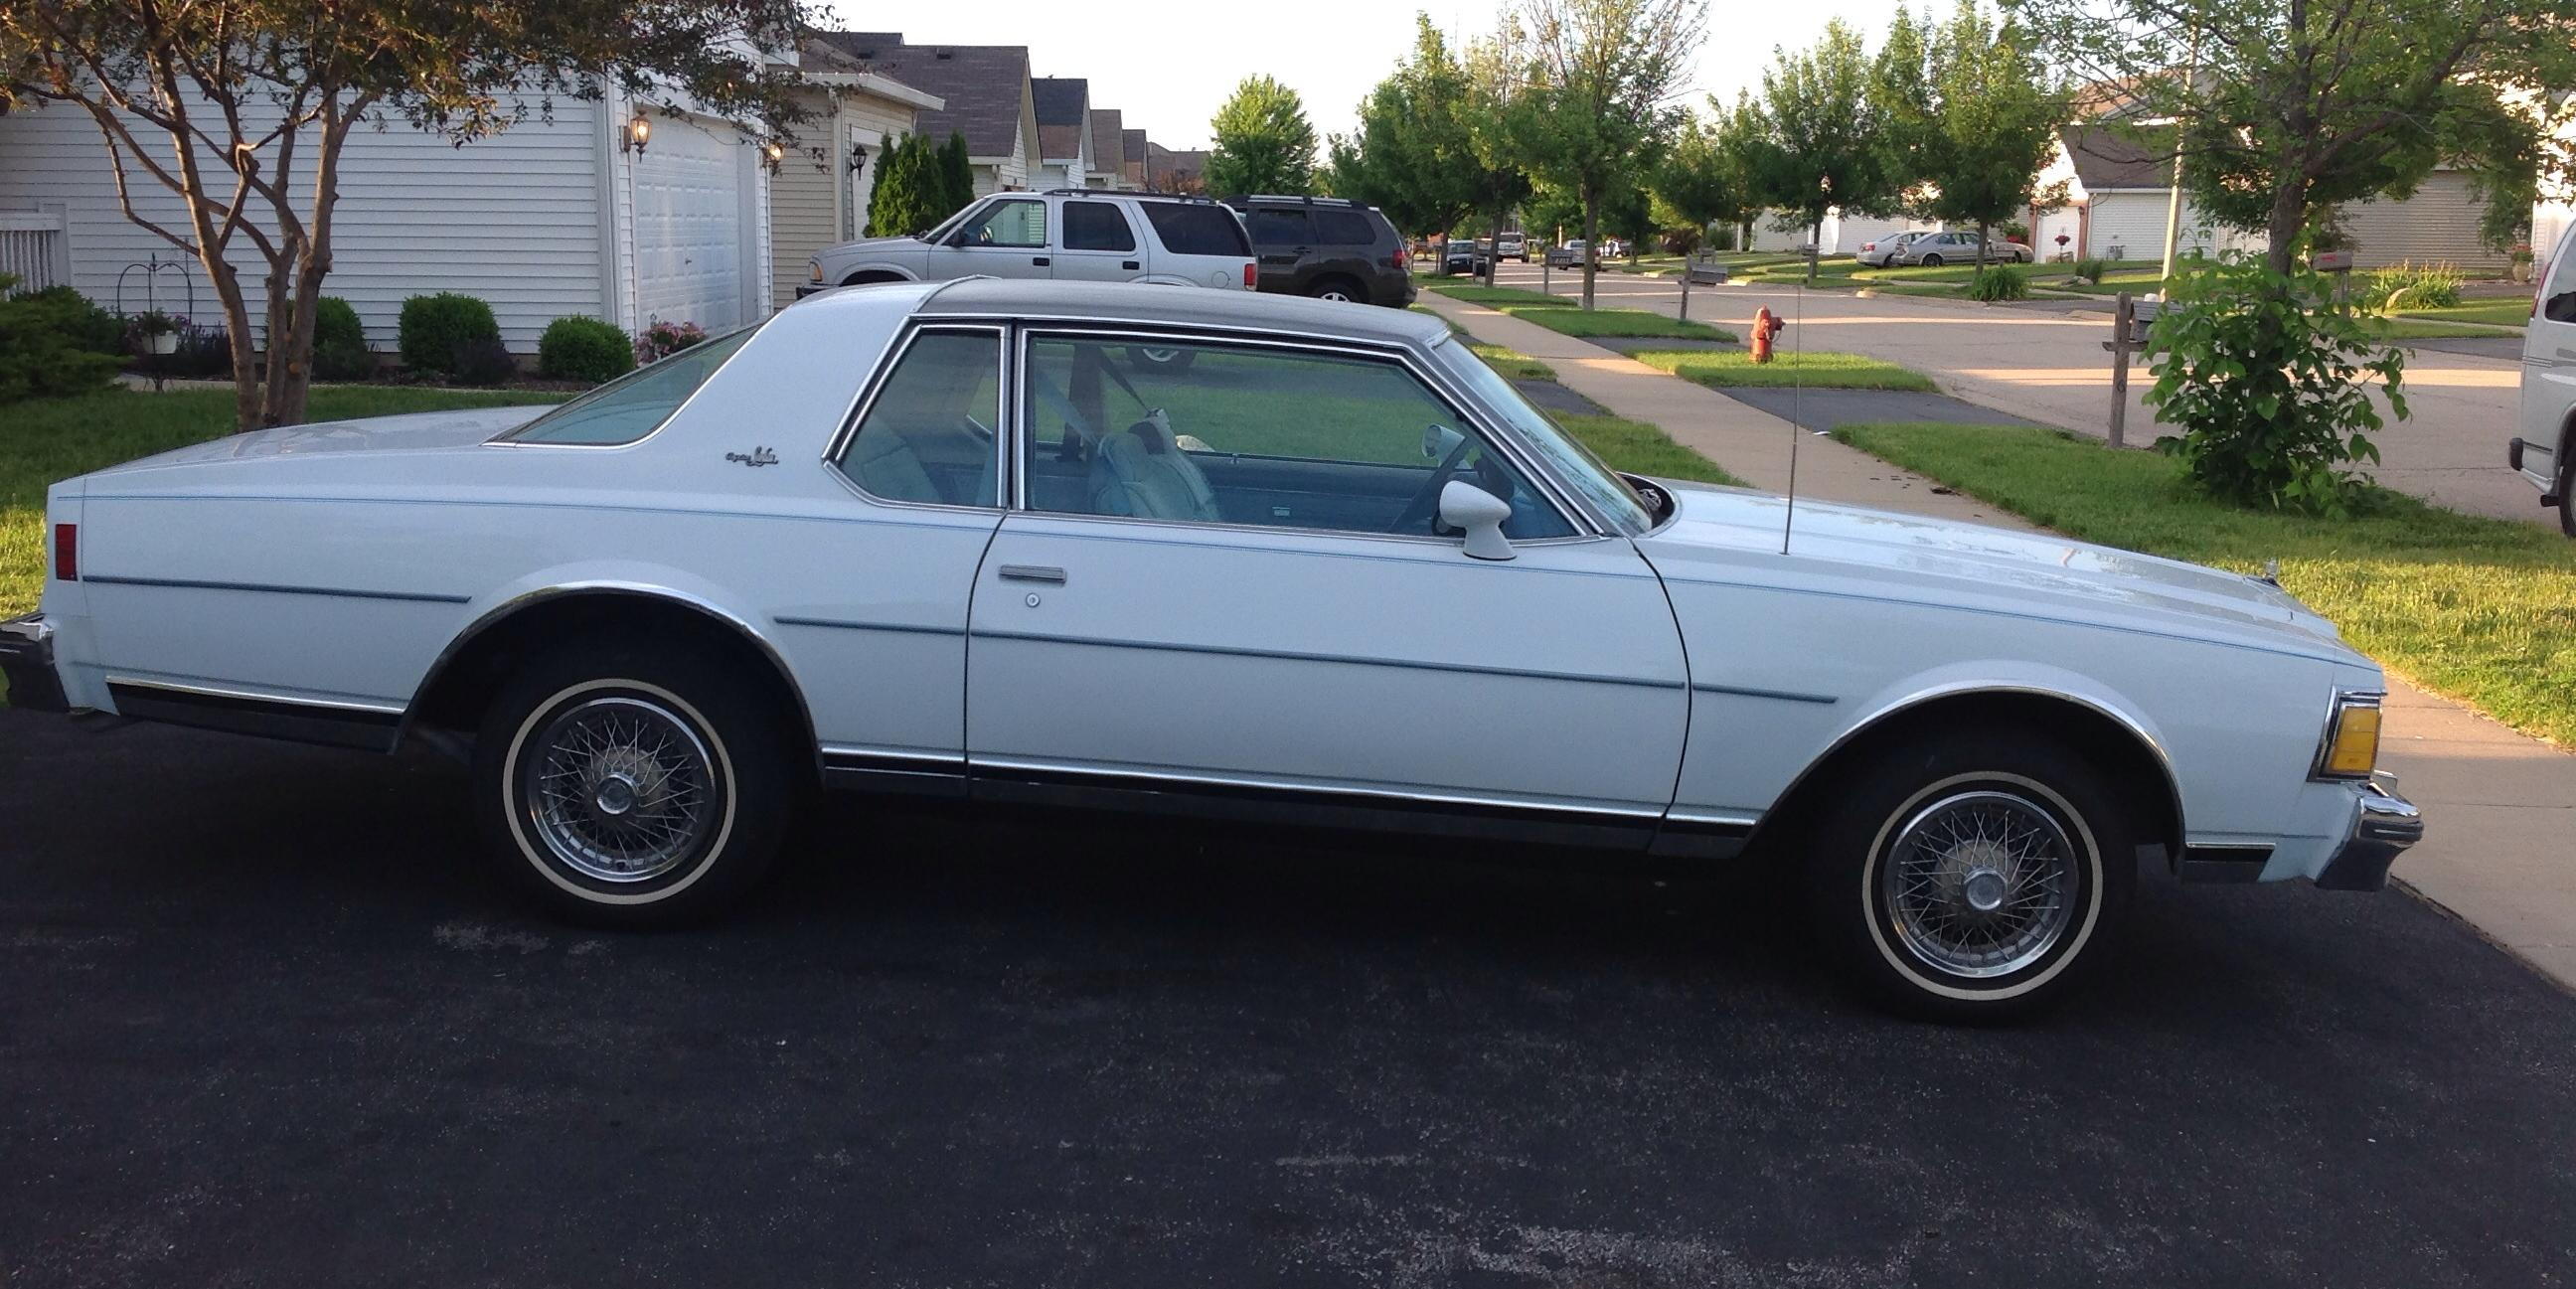 Soxchamps14 1979 Chevrolet Caprice